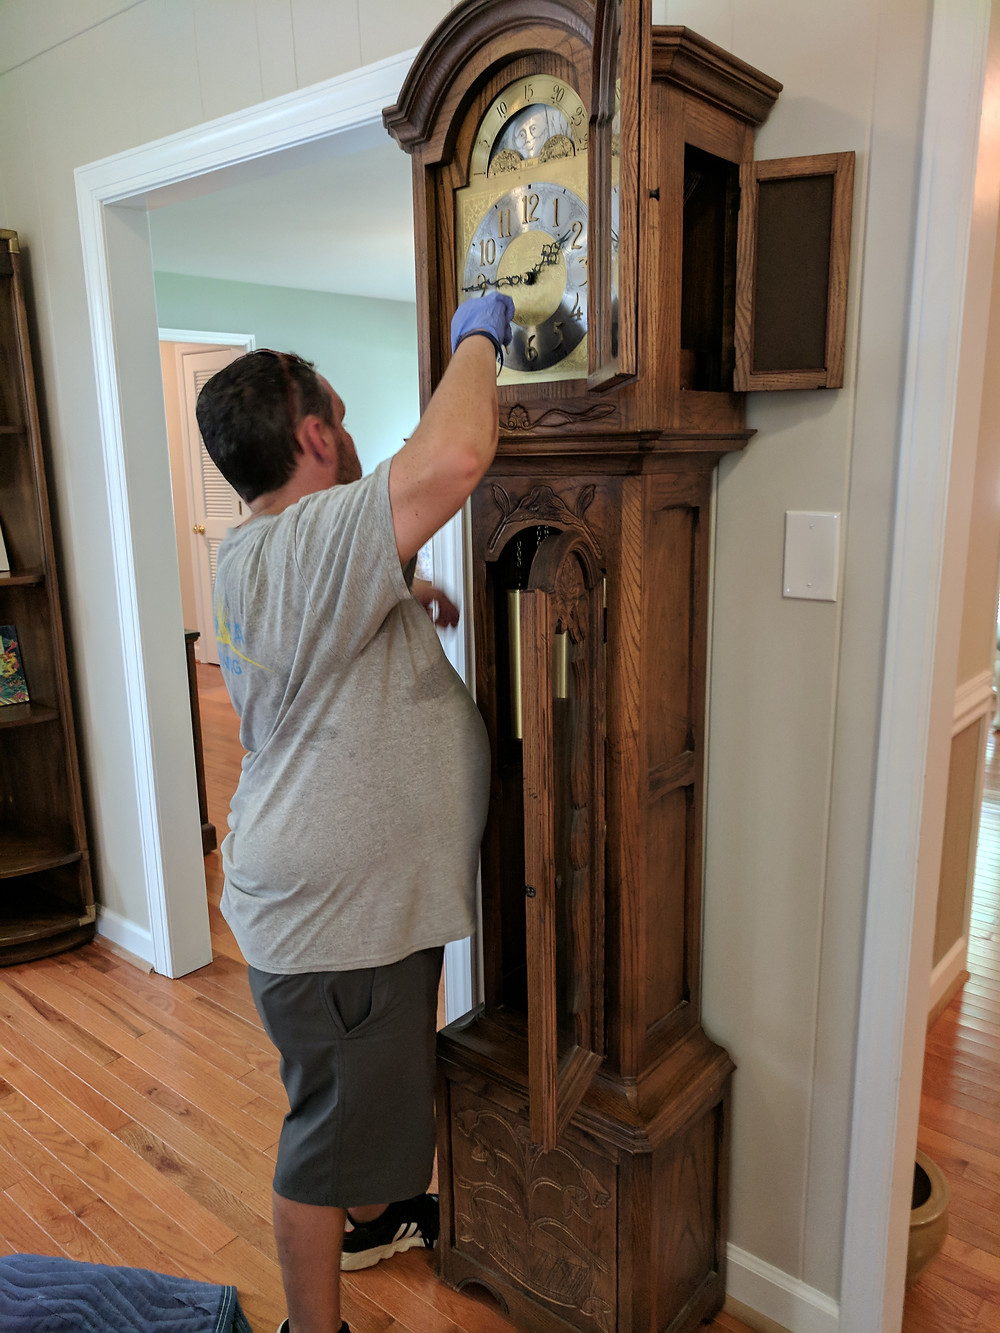 The Grandfather Clock gets attention